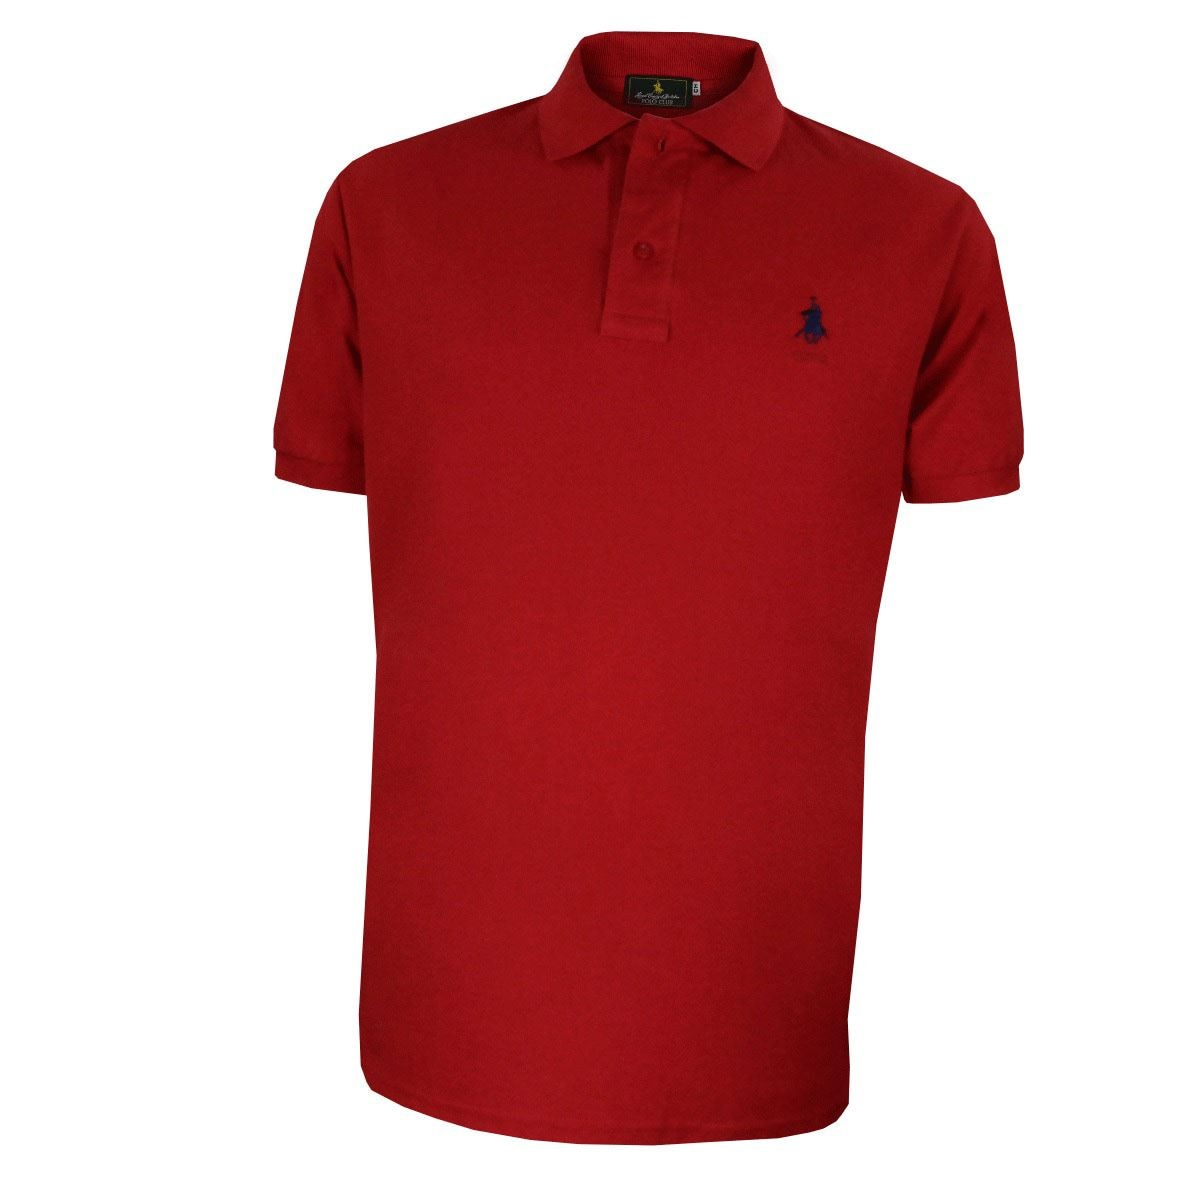 Playera Polo Club Mc Pique Algodón Gd Rojo